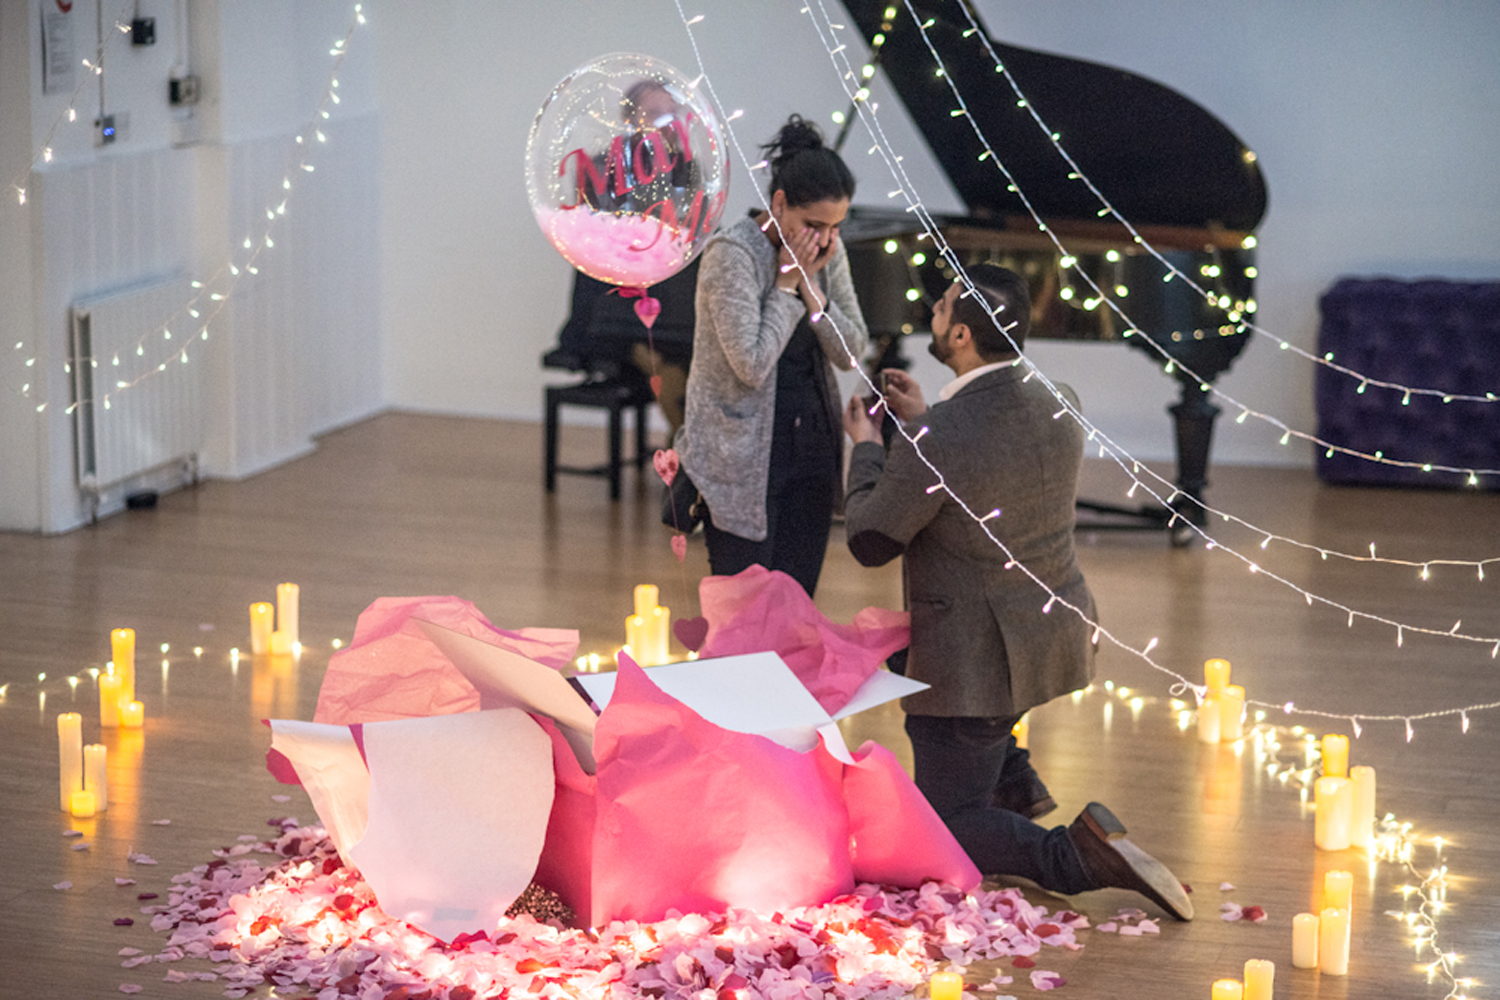 The Best Valentine's Day Proposal Ideas